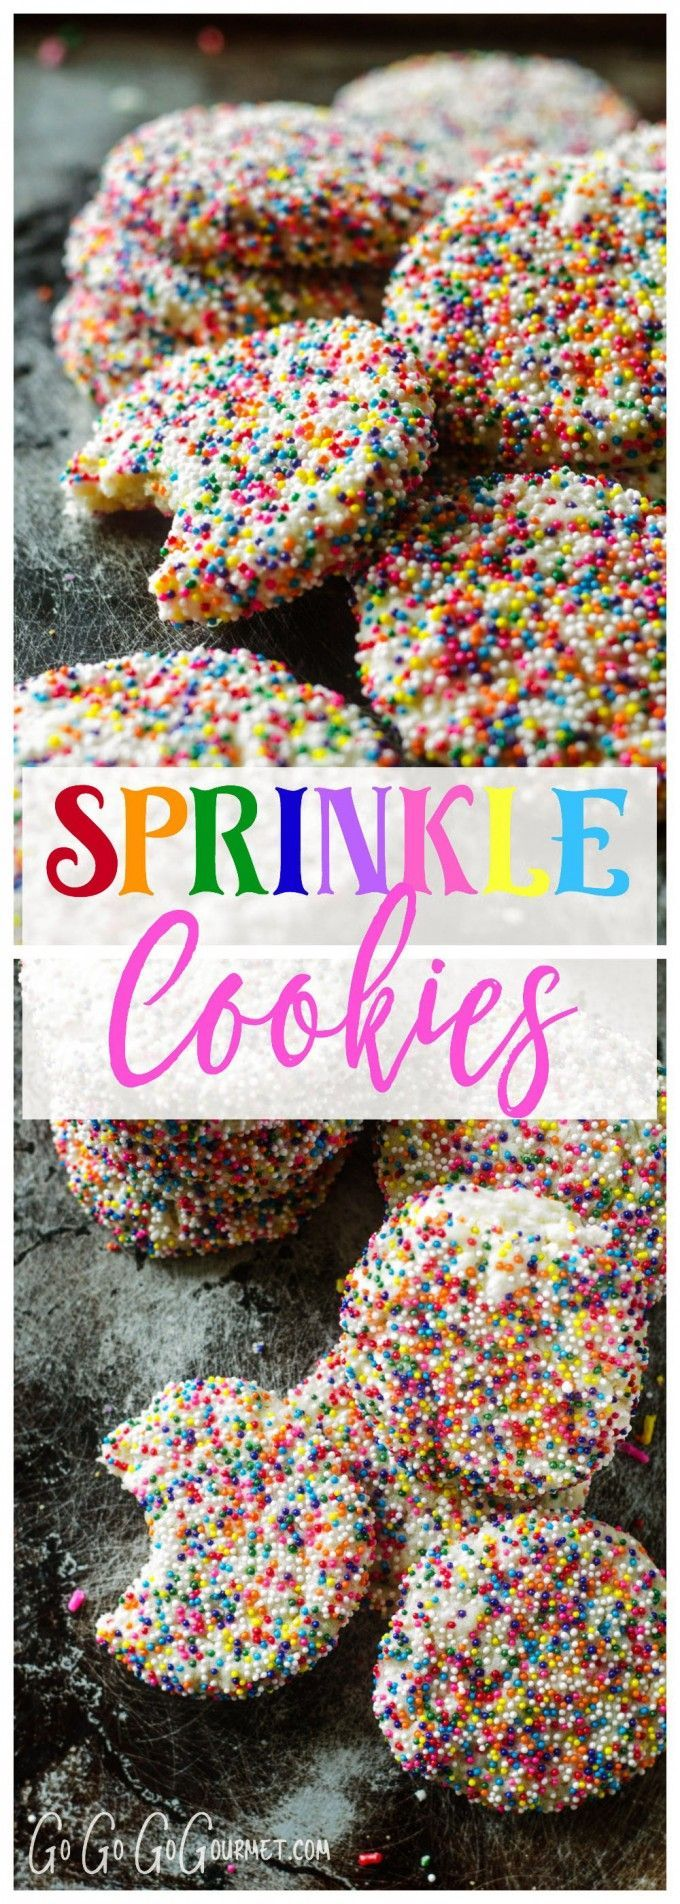 You can never have too many sprinkles! | Sprinkle Cookies via /gogogogourmet/